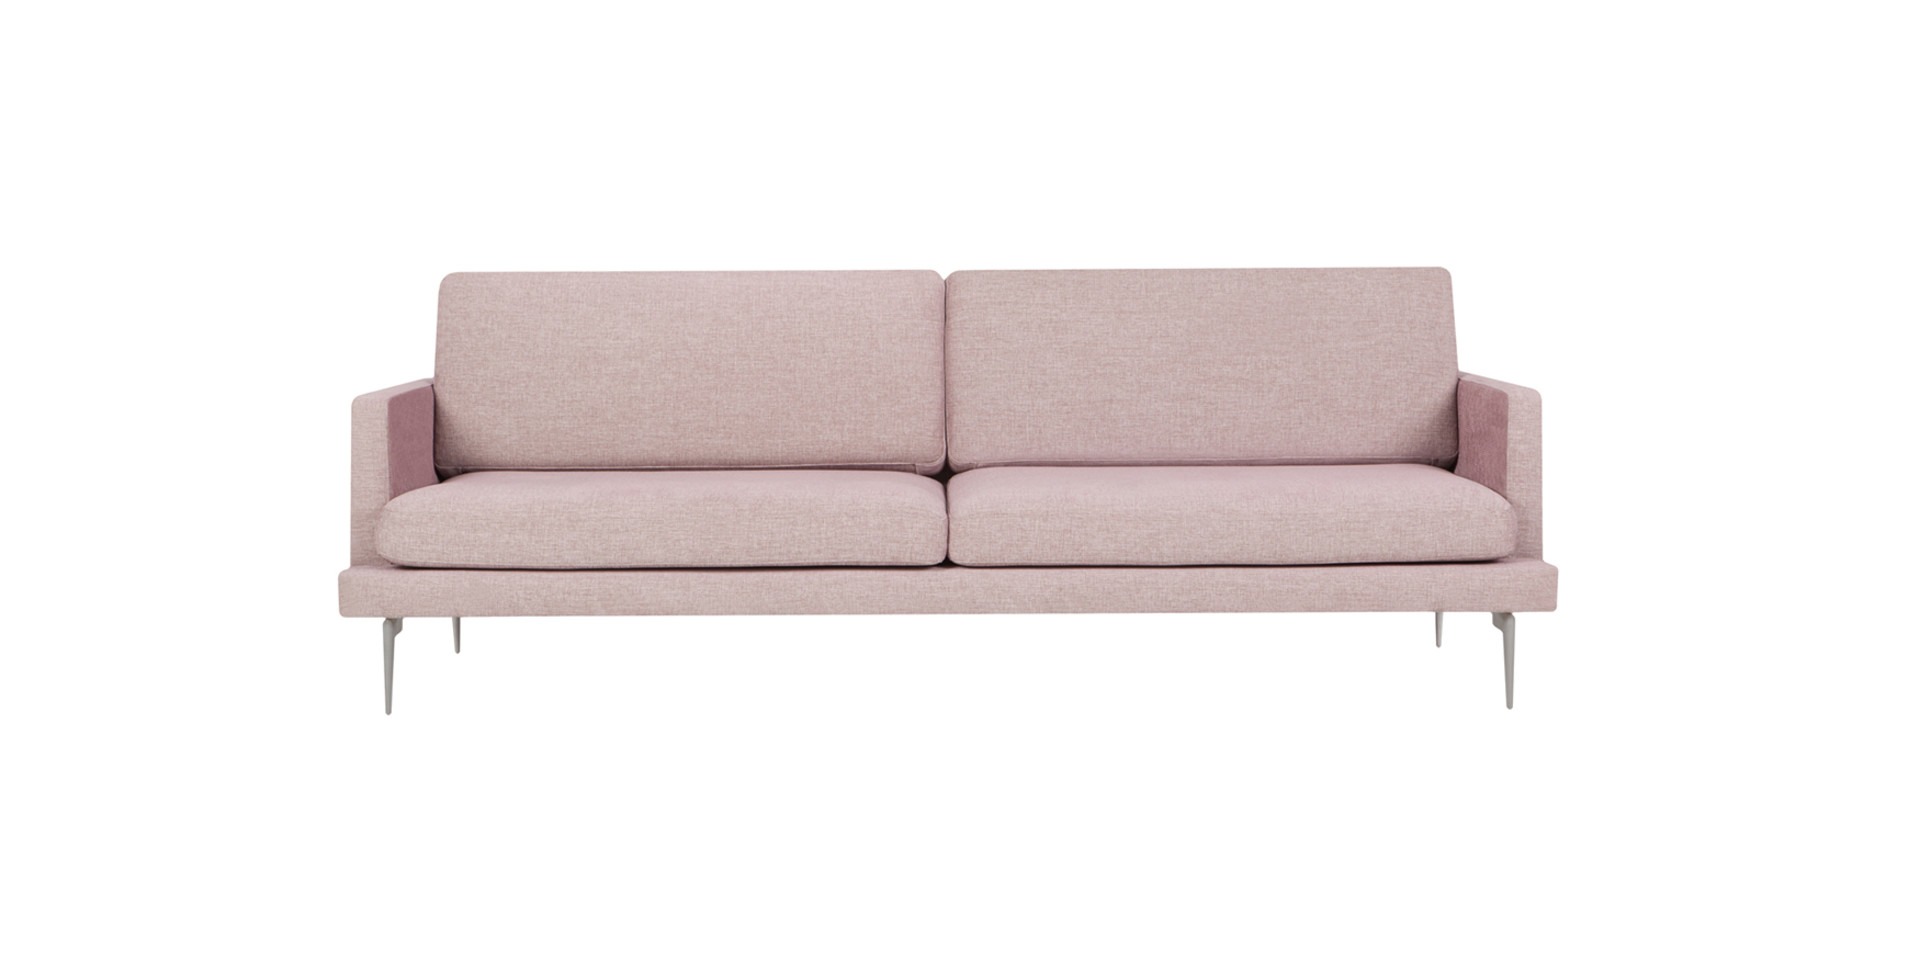 sits-ludvig-canape-3seater_divine61_pink_1